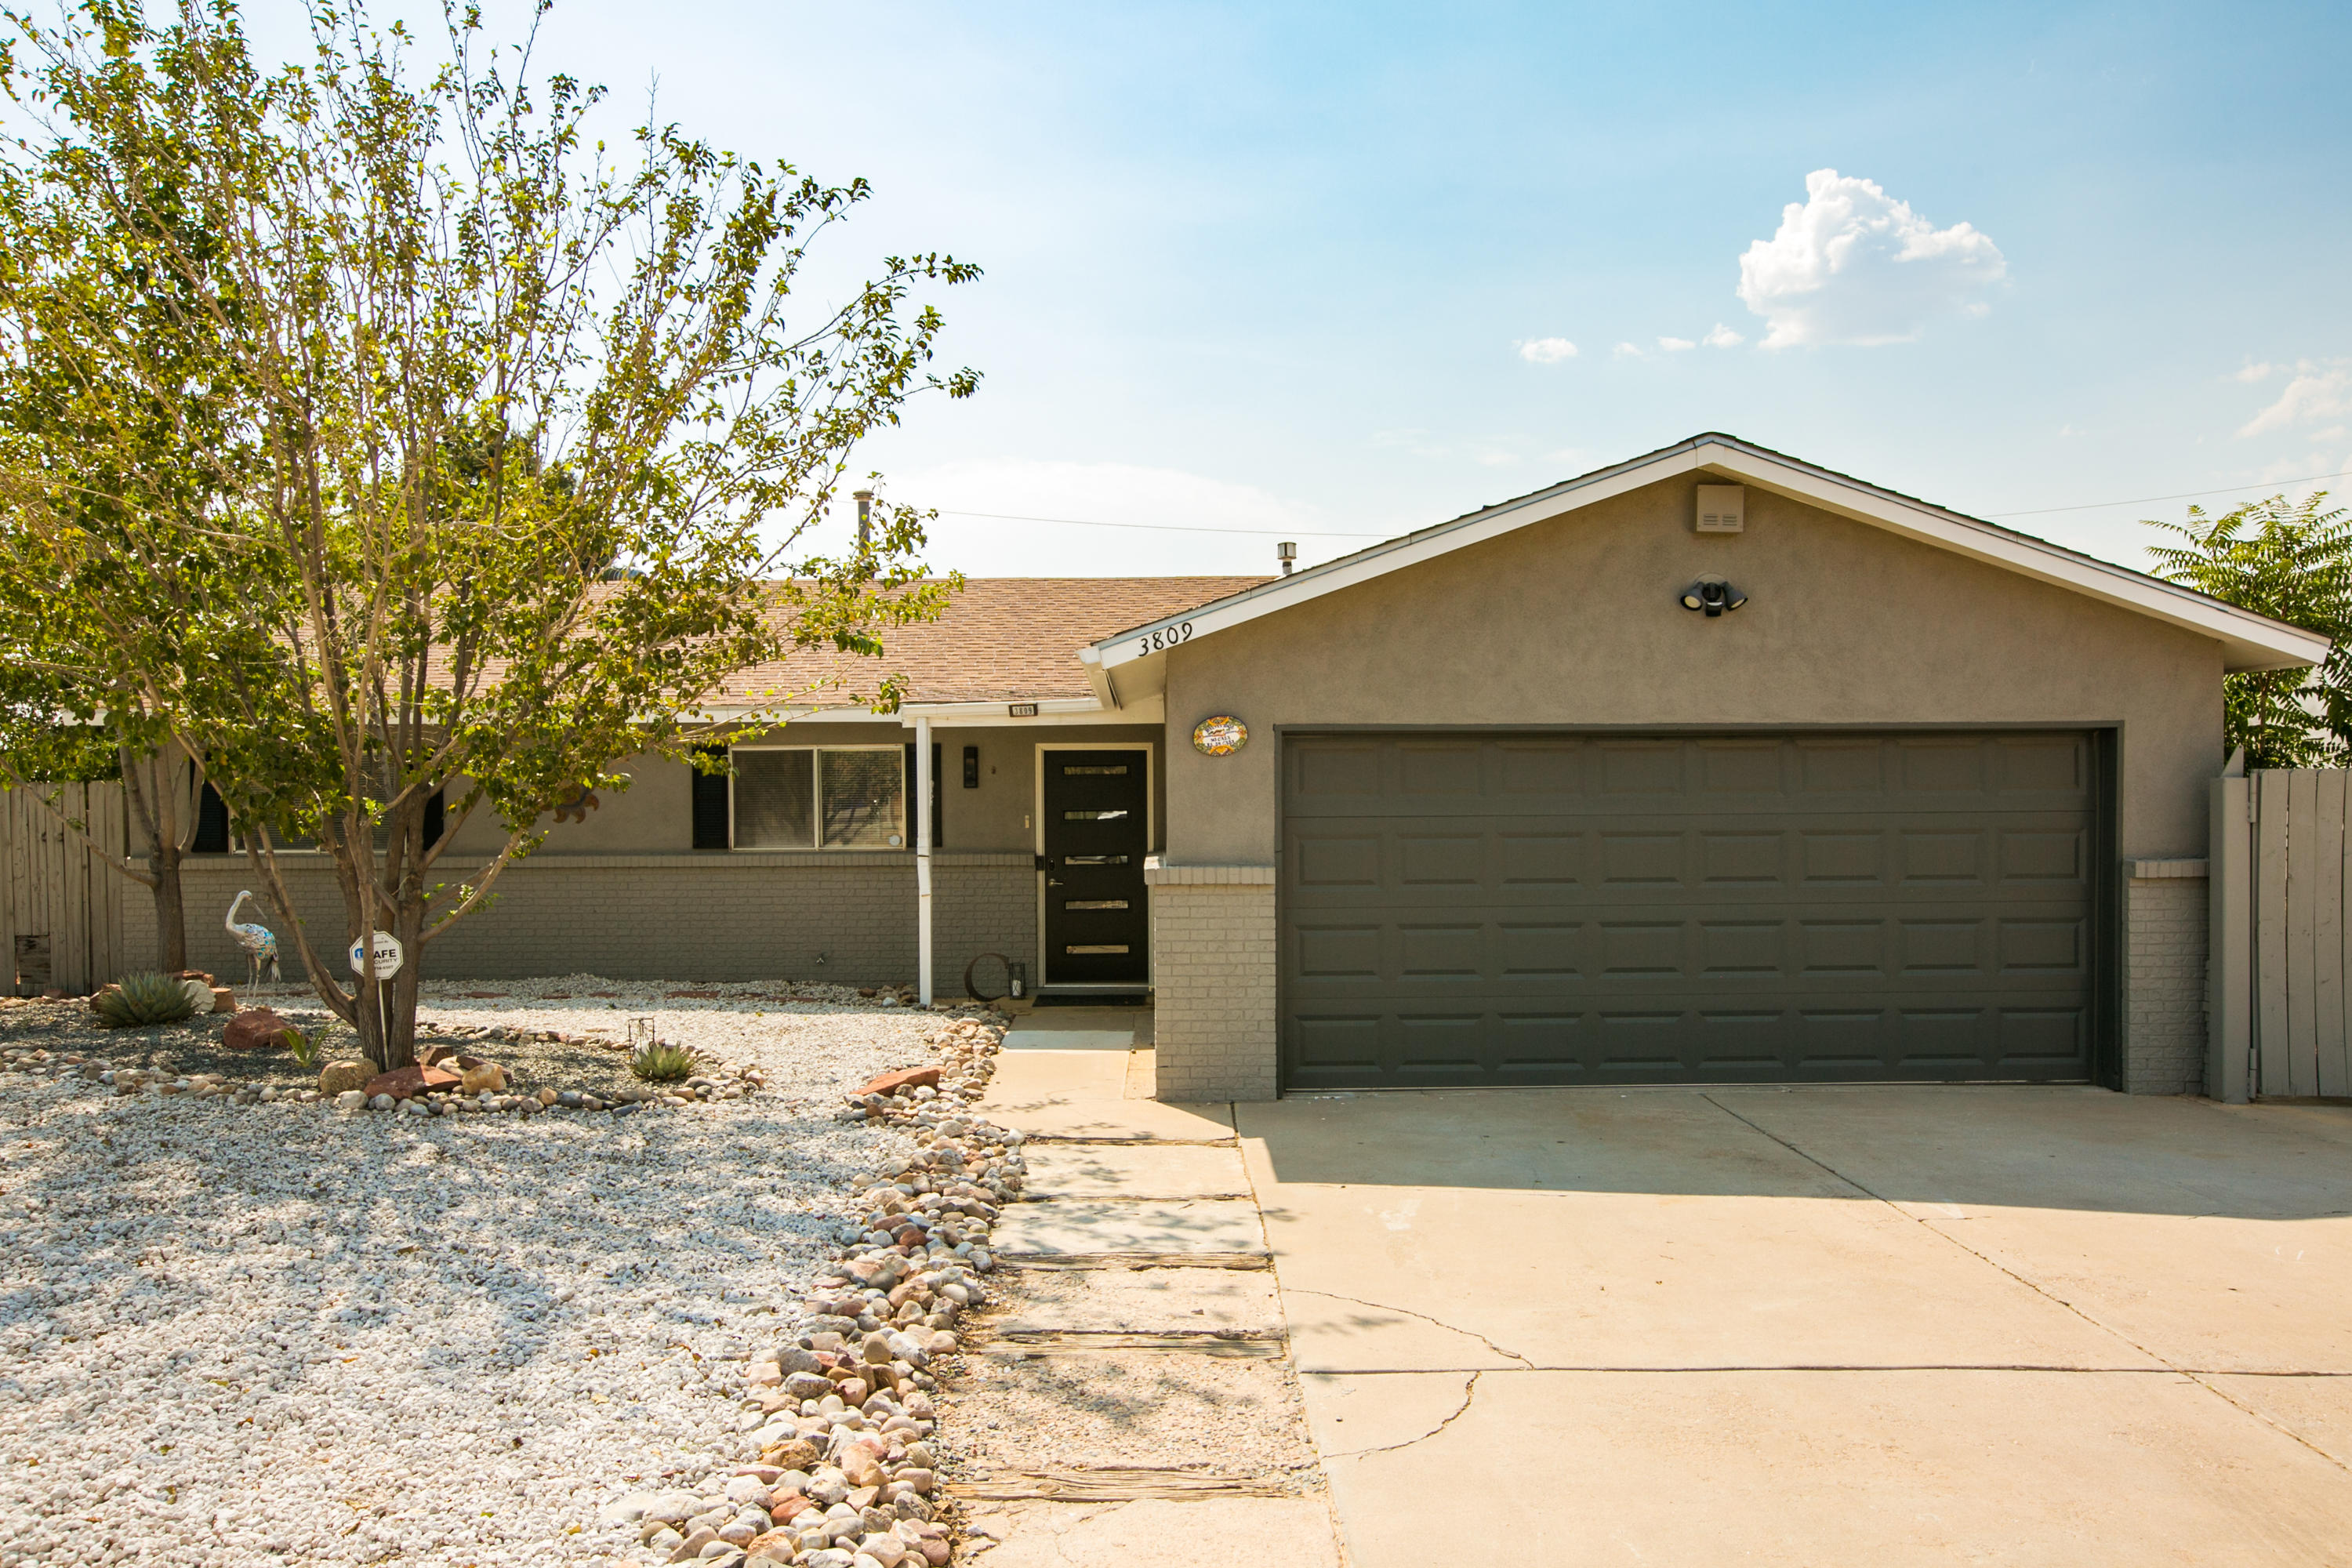 Featuring a well maintained 3 bedroom 2 bath home sits on a .22 acre lot and offers an open floor plan. New paint throughout, new HVAC system, new front door, tankless water heater, Panel upgrade, plus a 584 sq ft. shop rewired, new security and porch lights, zero-scaped, new fans in the sunroom and great room, new water shut off valve in garage and new garage remote. Beautiful faux wood flooring, bullnose finished granite, and cultured marble surround showers. A spacious great room has a warm and tranquil retreat with wood finished ceilings and walls, comfortable bancos and a kiva pellet stove to provide relaxation, rest, and entertaining. Great central location to all amenities.